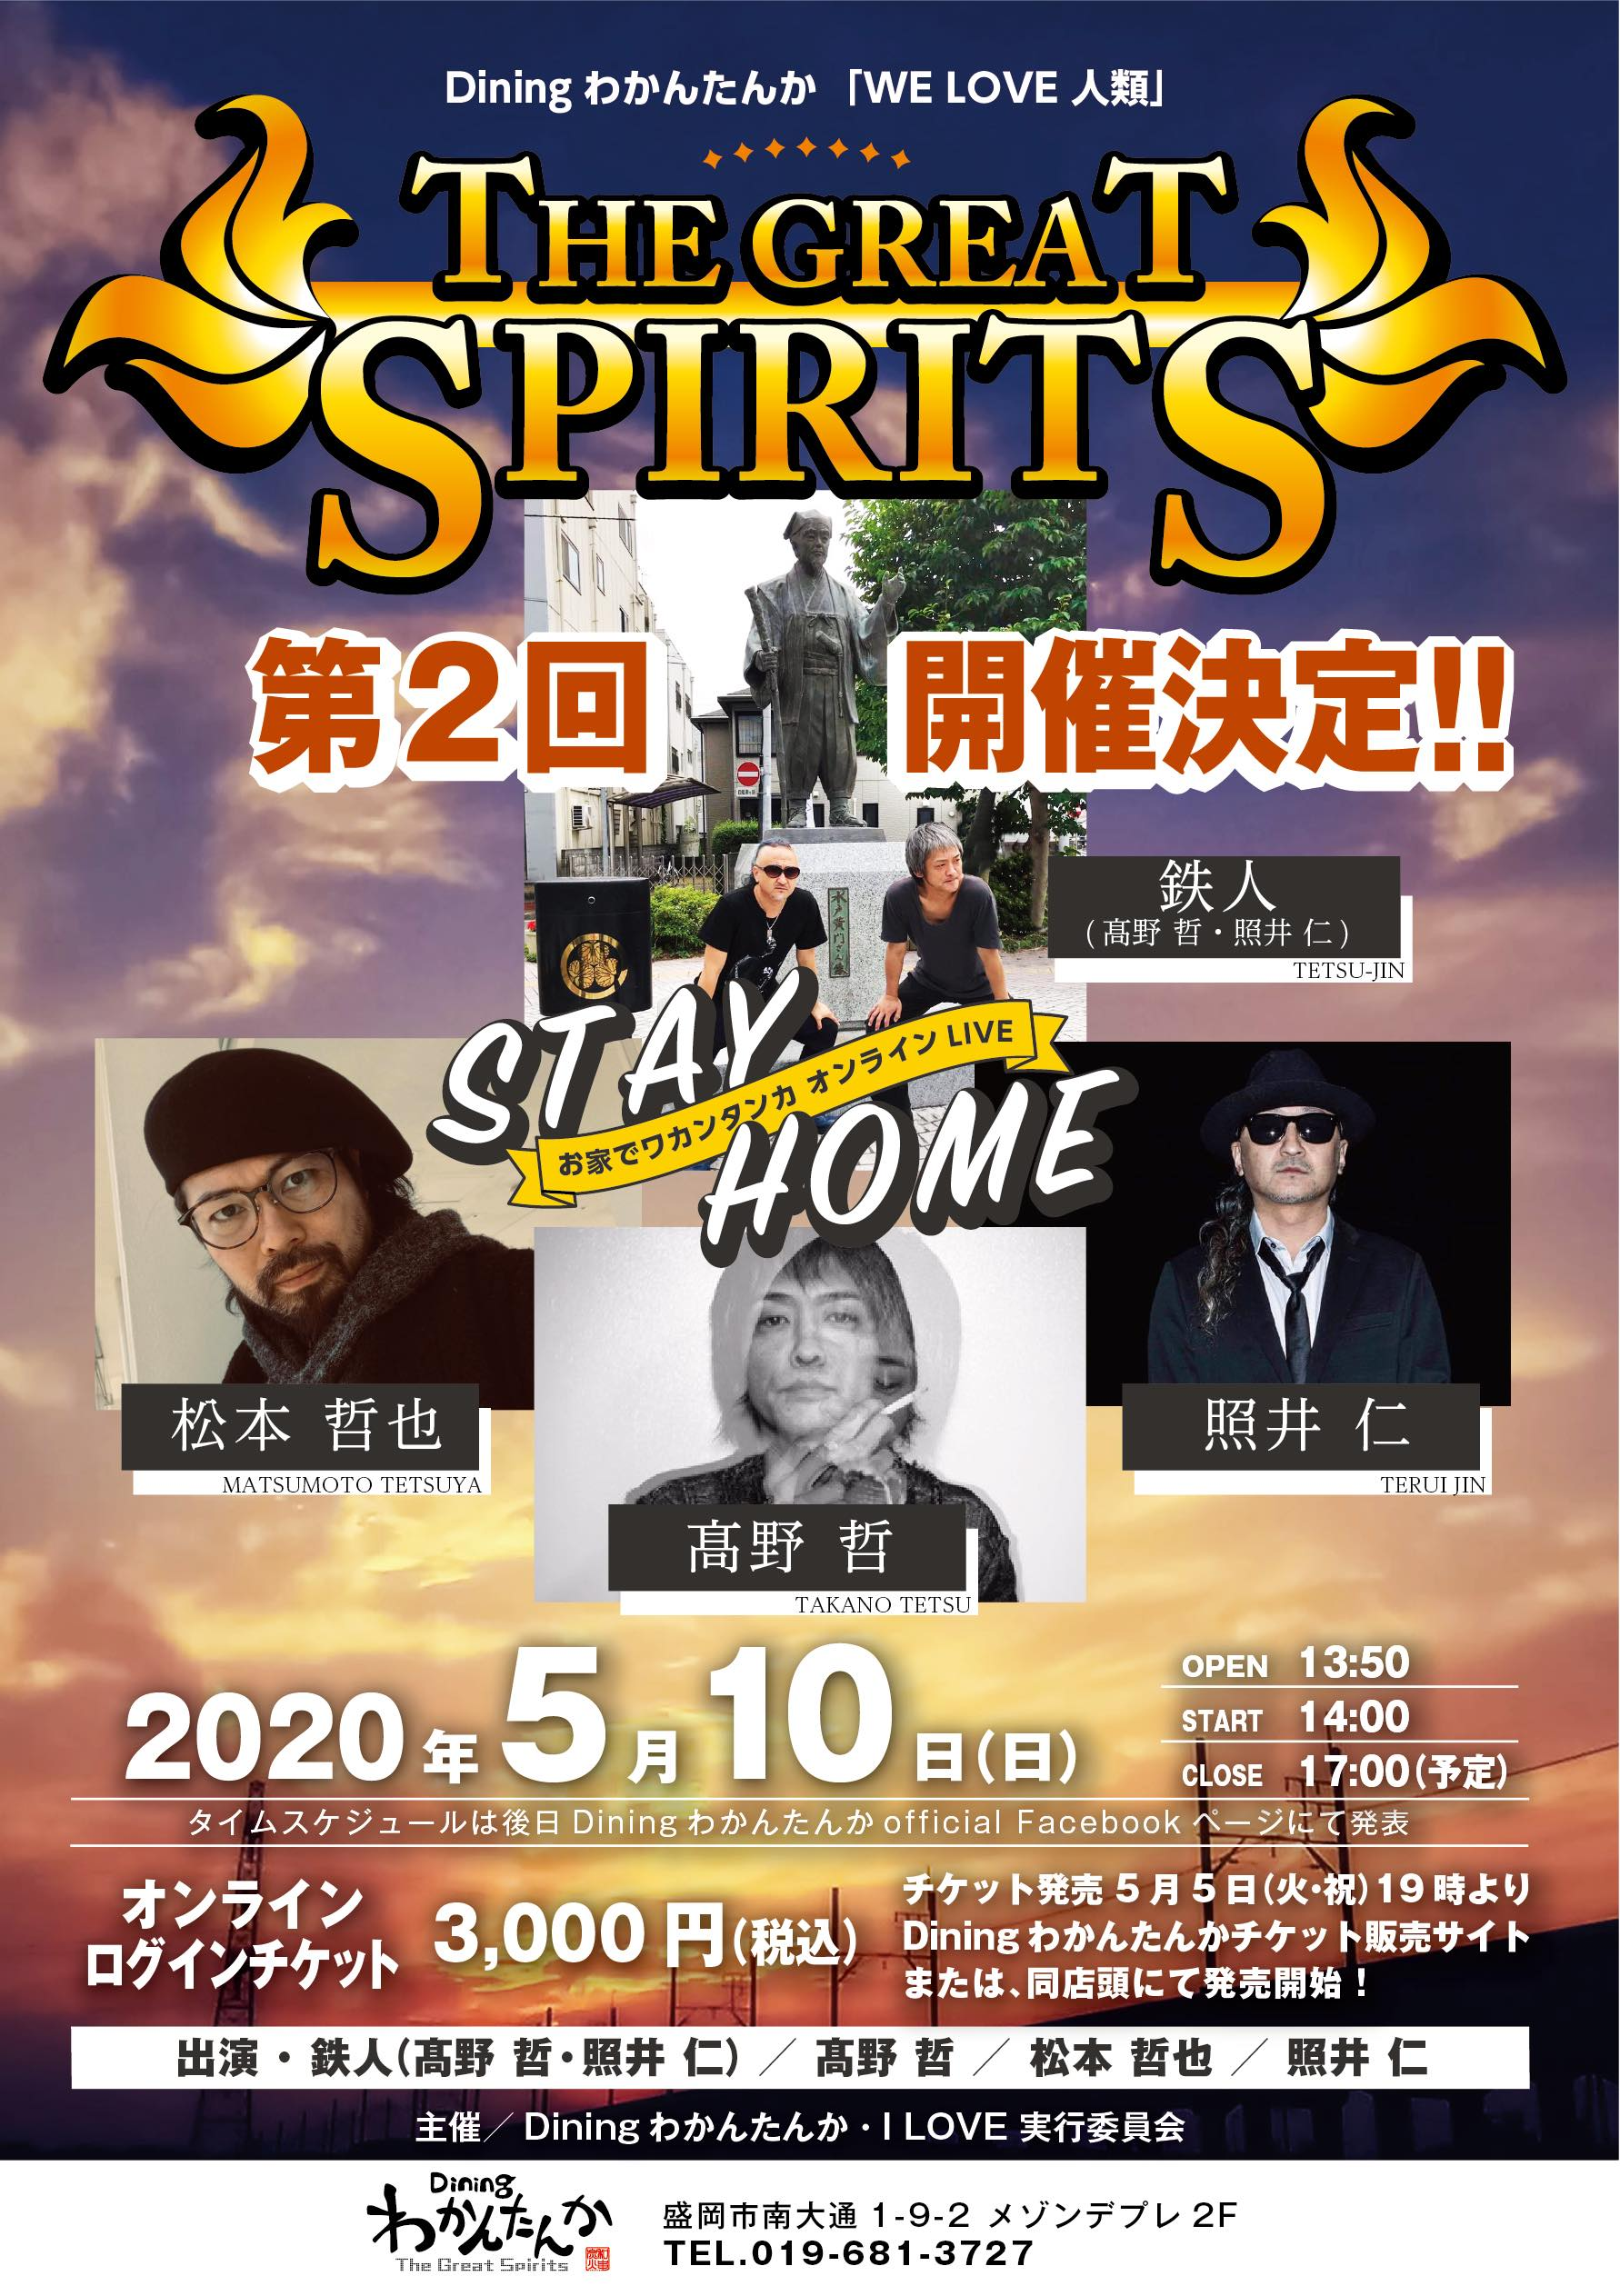 「THE GREAT SPIRITS」2nd